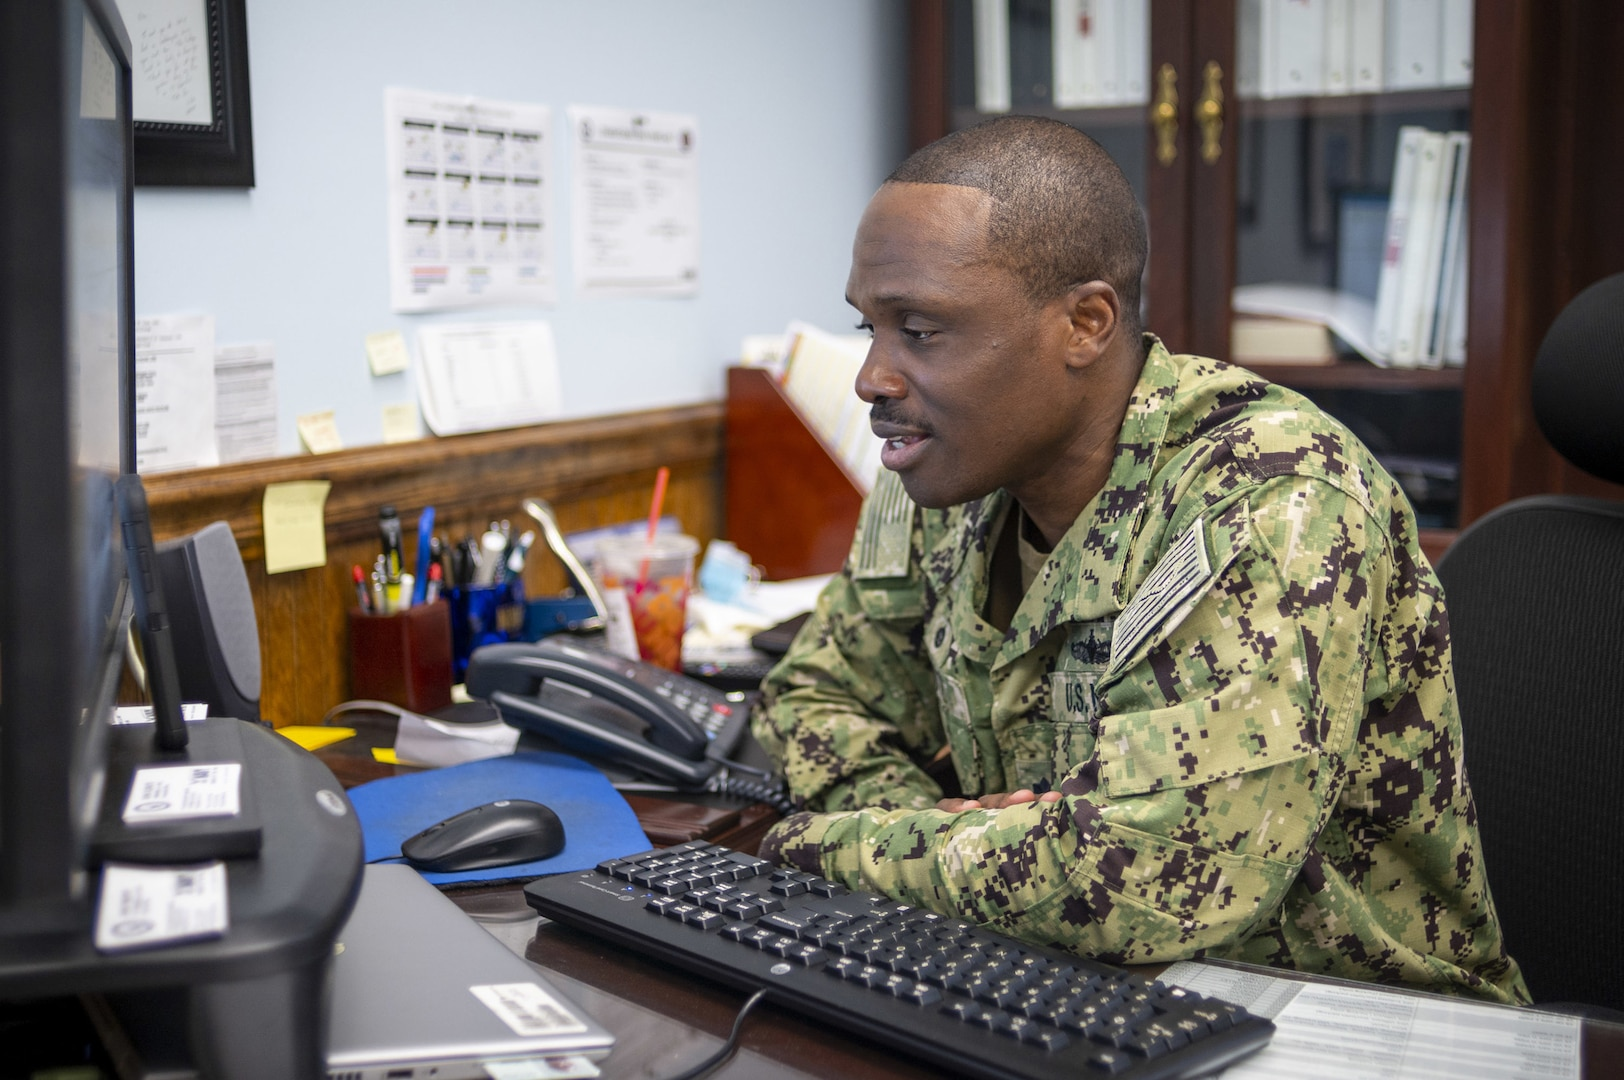 DOD Personnel Prove Productive, Resilient During Pandemic